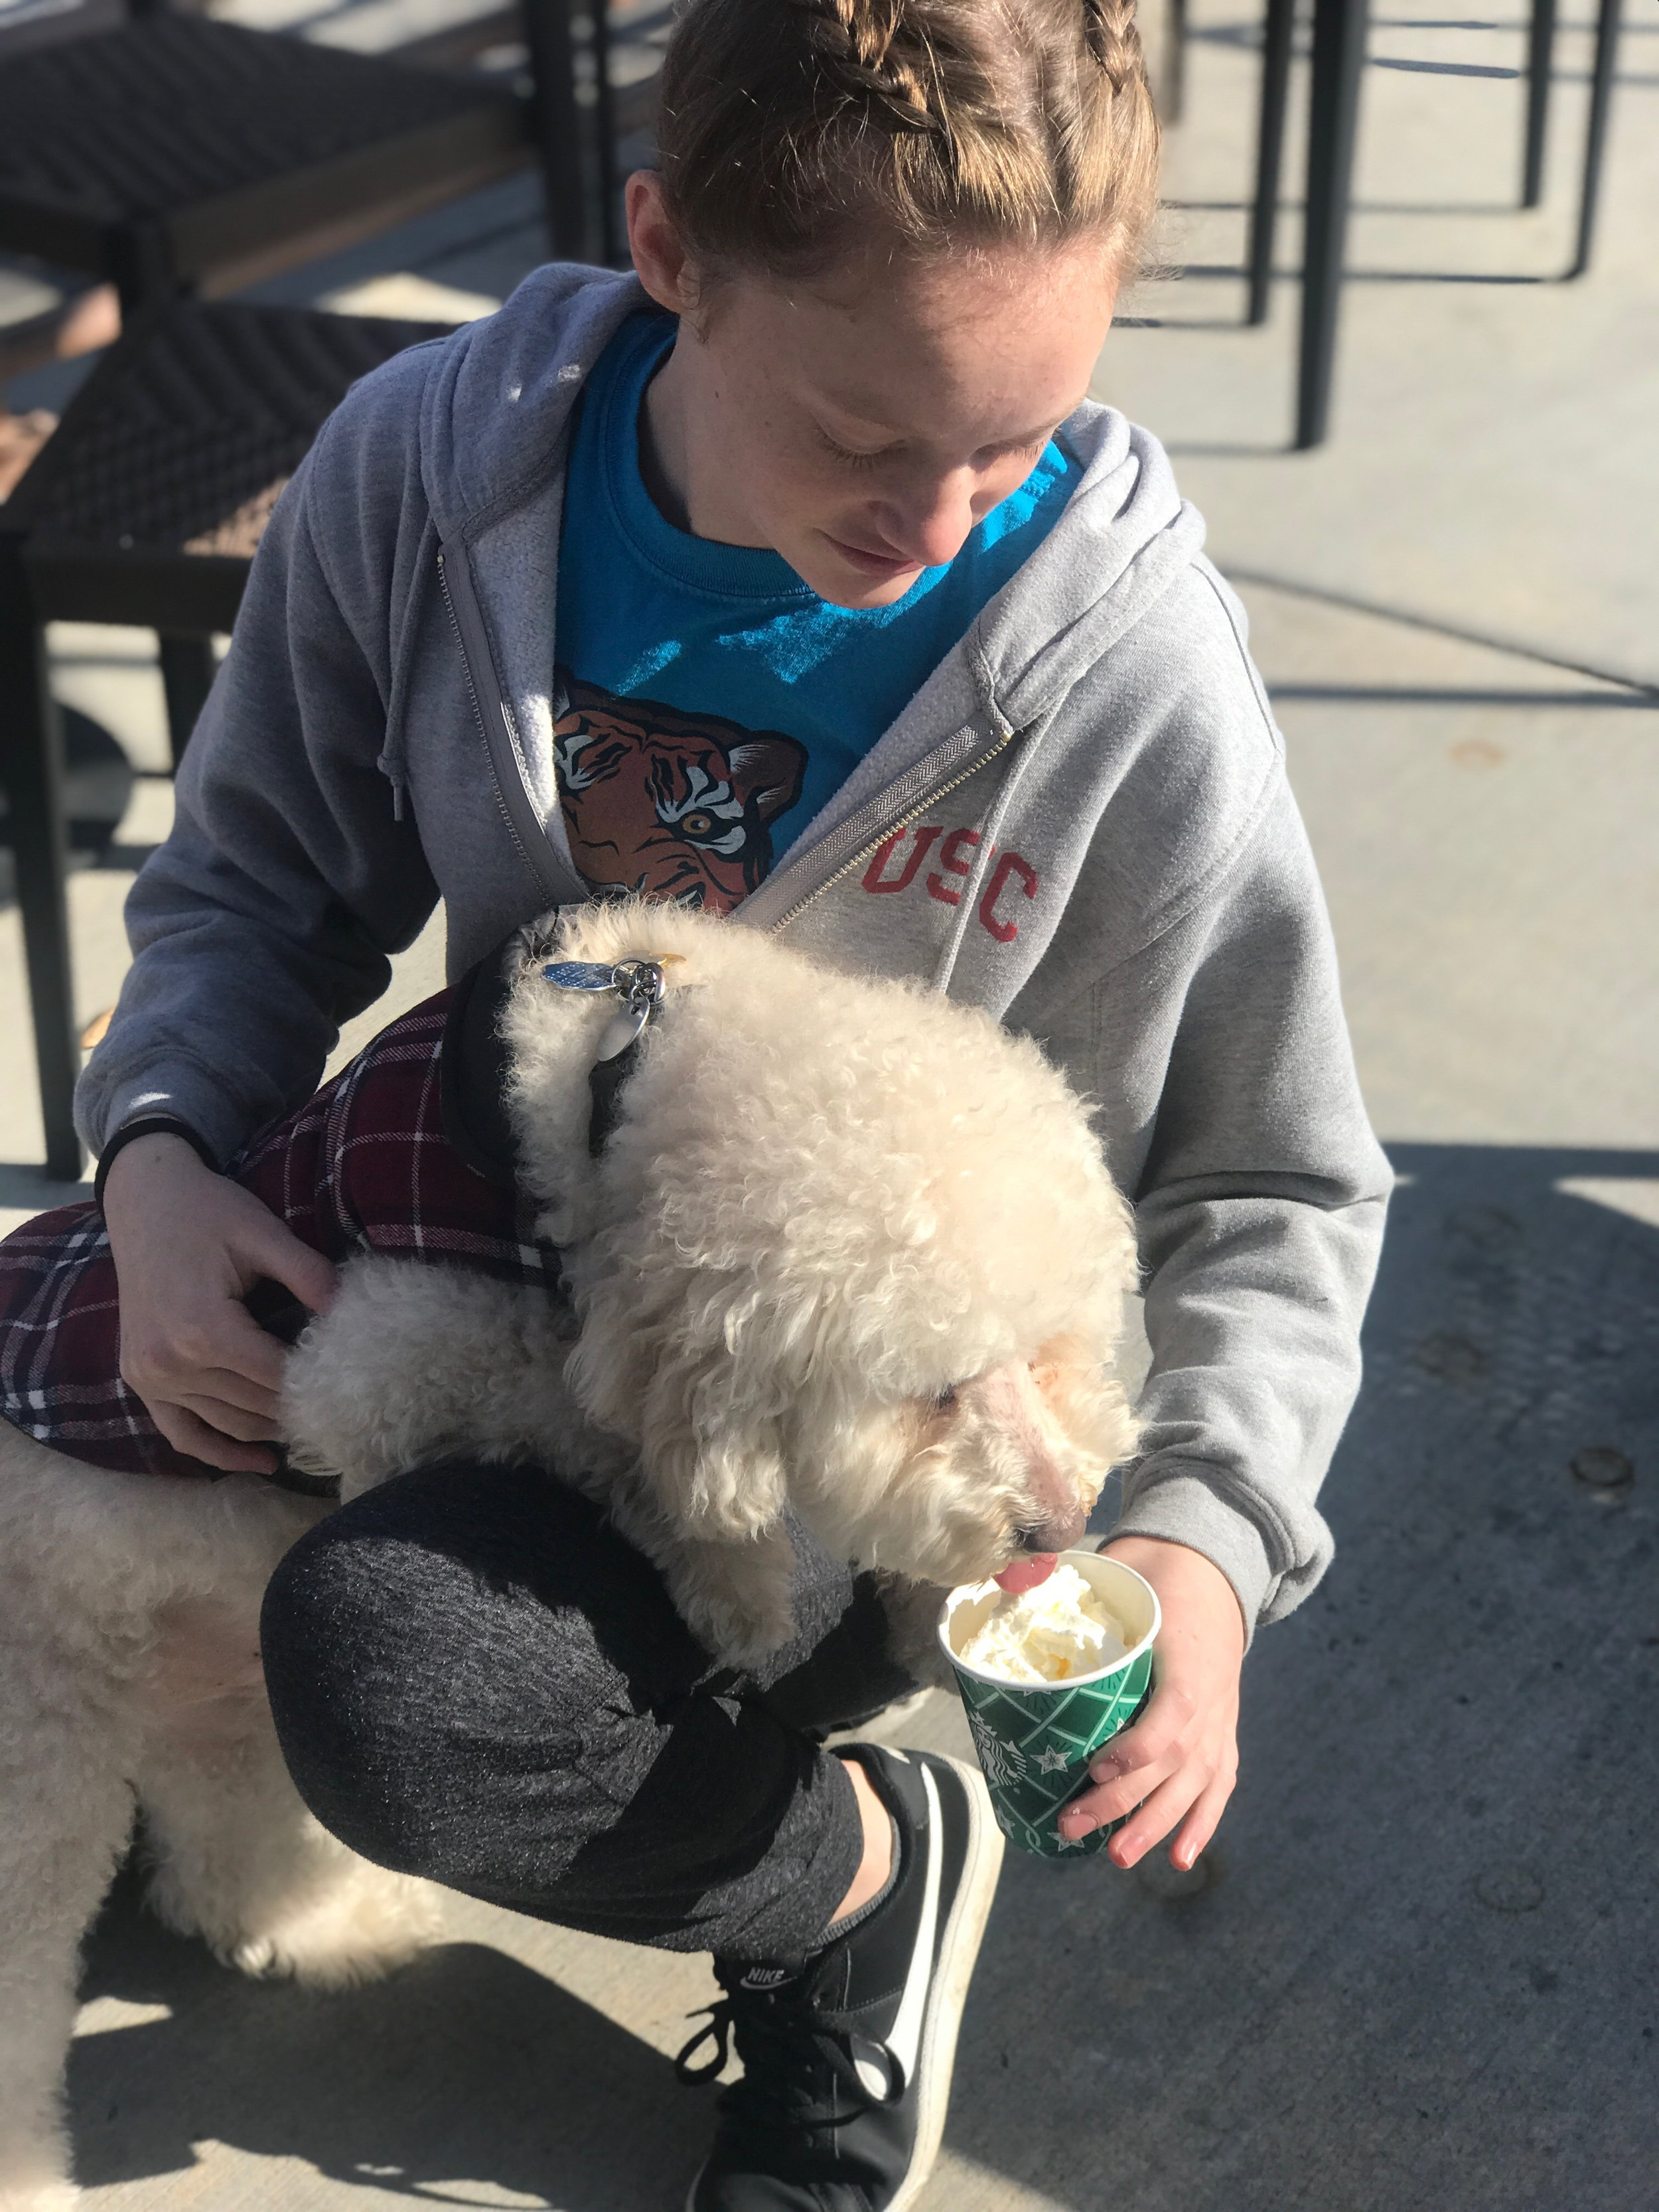 The Infamous Puppuccino